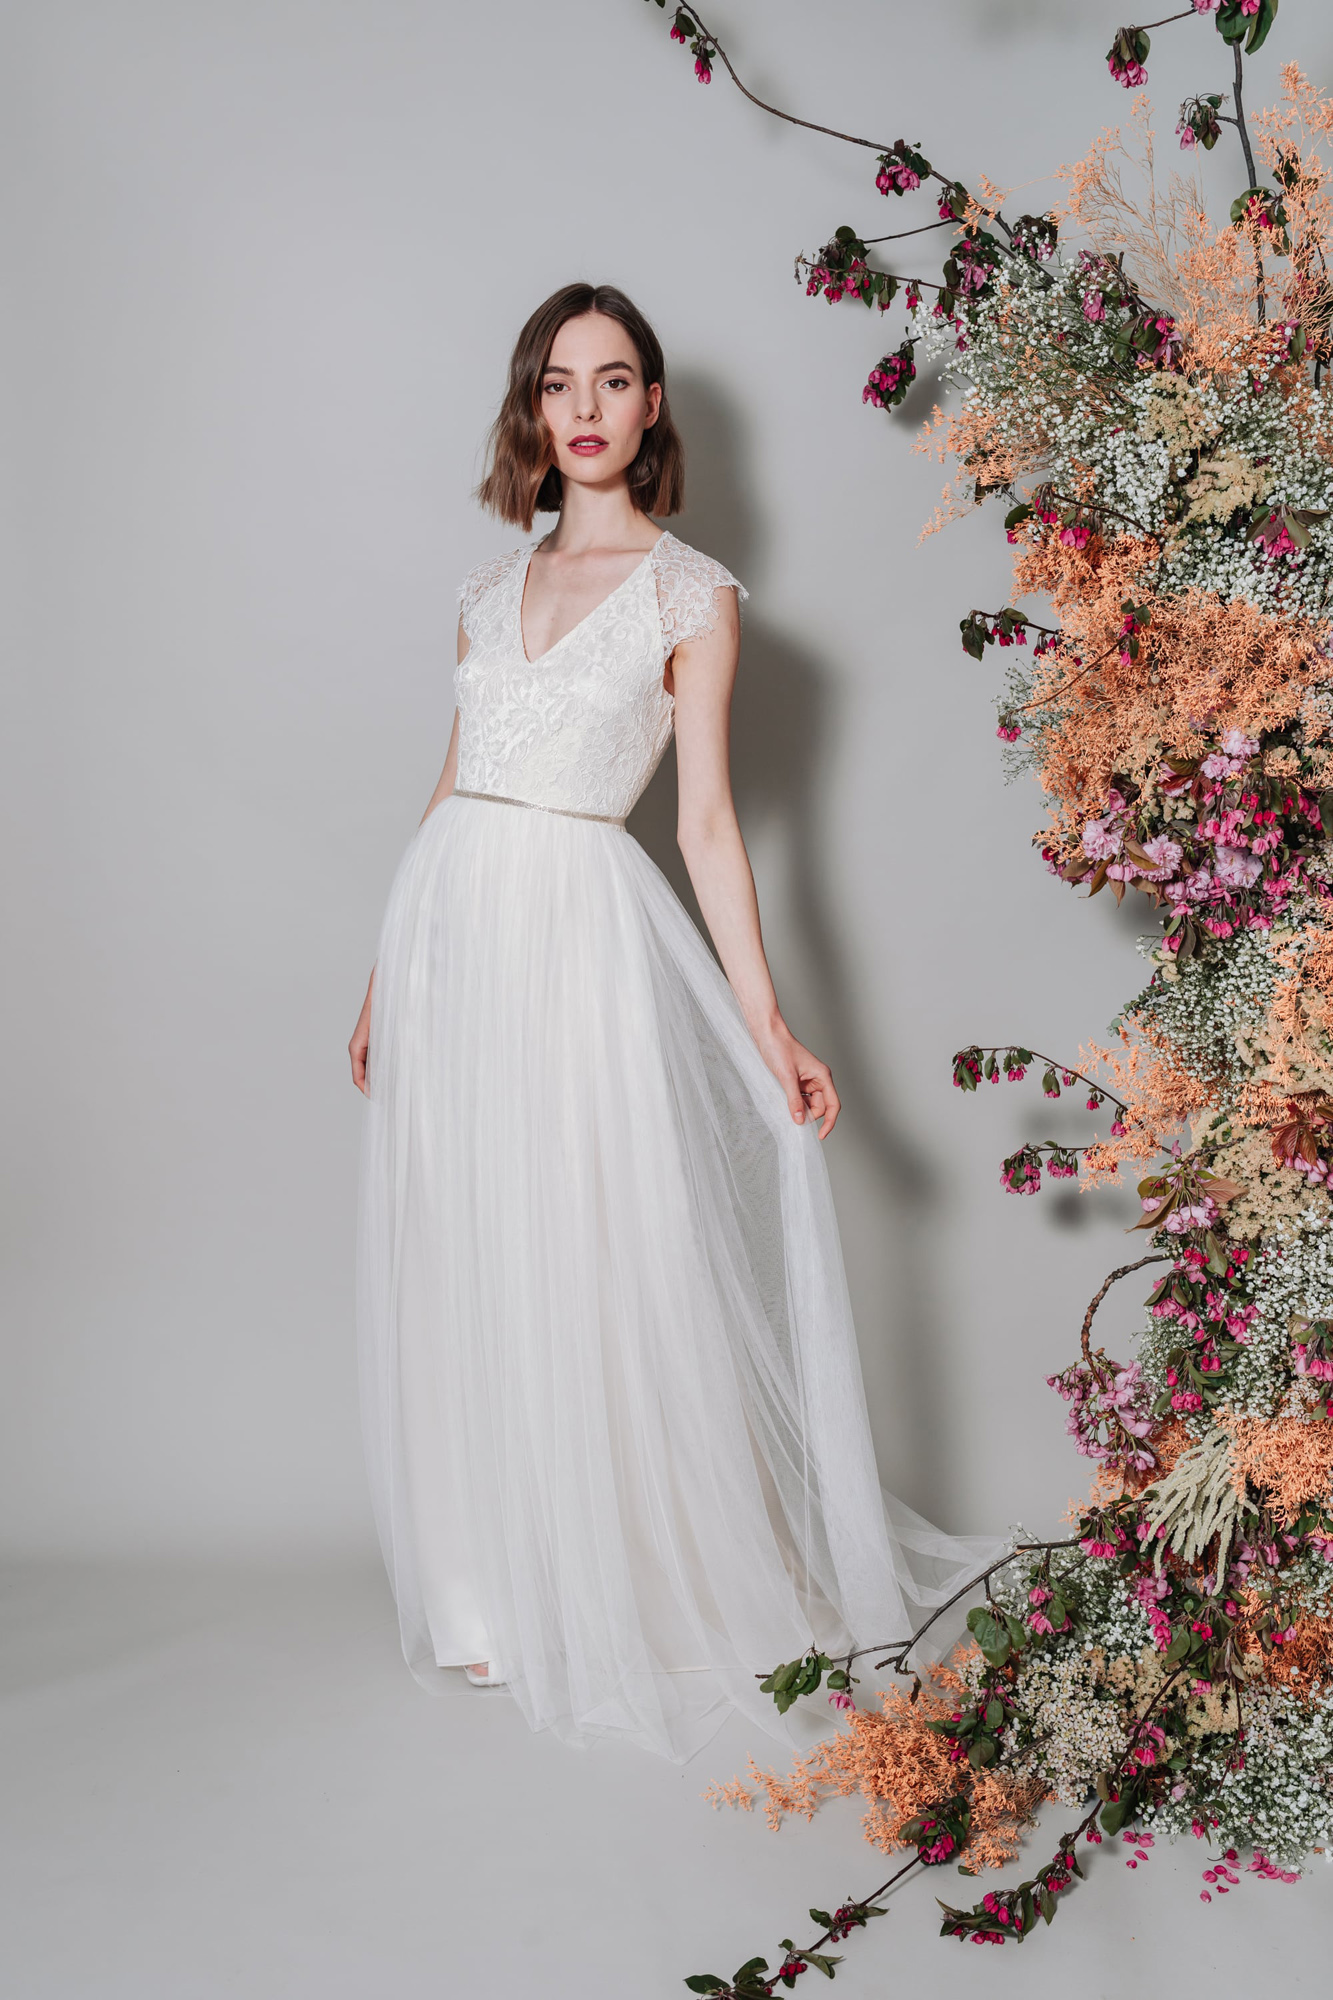 Kate-Beaumont-Sheffield-Mimosa-Lace-Tulle-Bohemian-Wedding-Gown-10.jpg